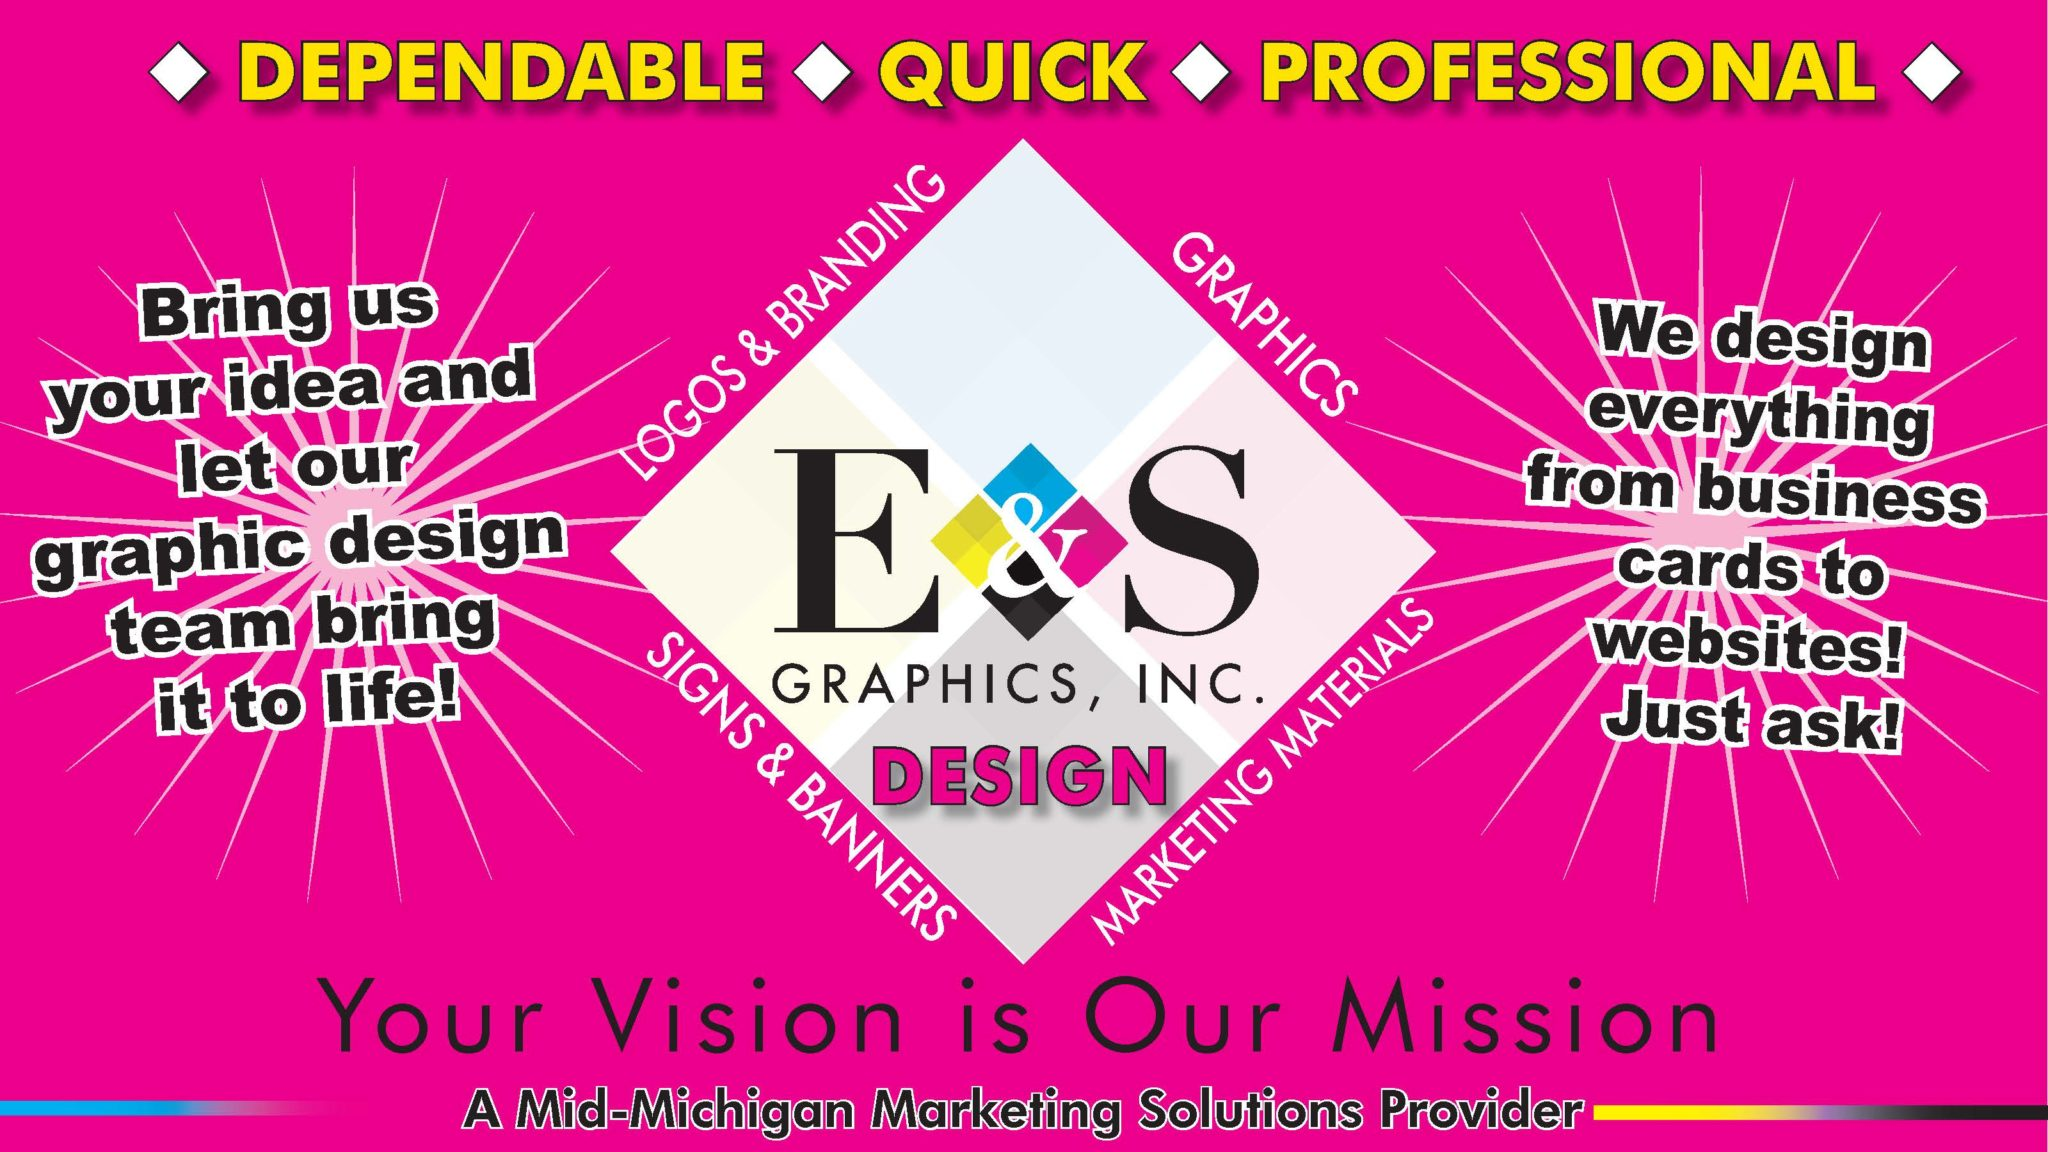 Graphic Design by E & S Graphics